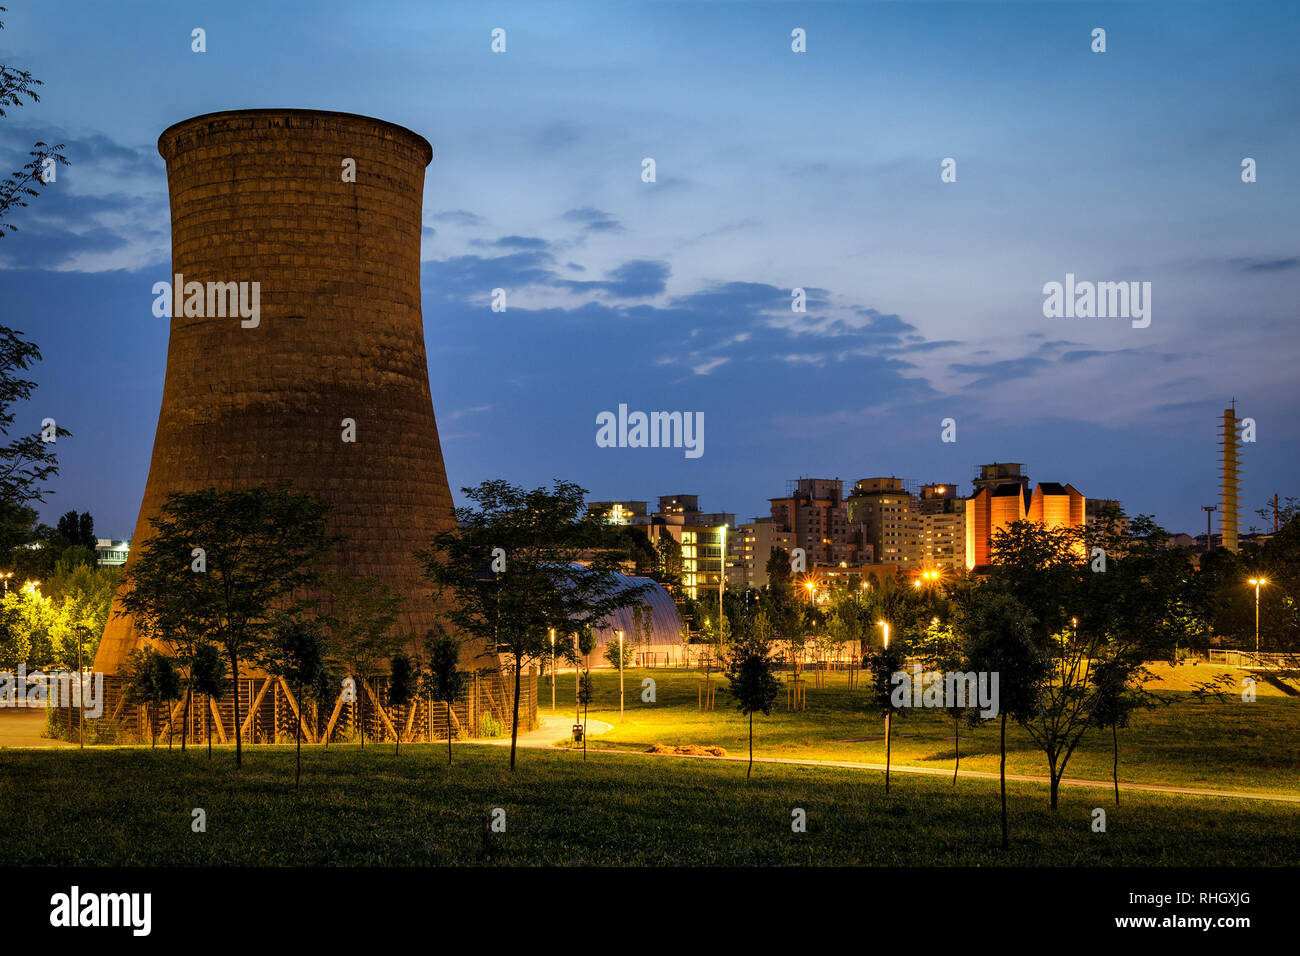 Turin (Torino) Parco Dora with former Michelin plant cooling tower Stock Photo